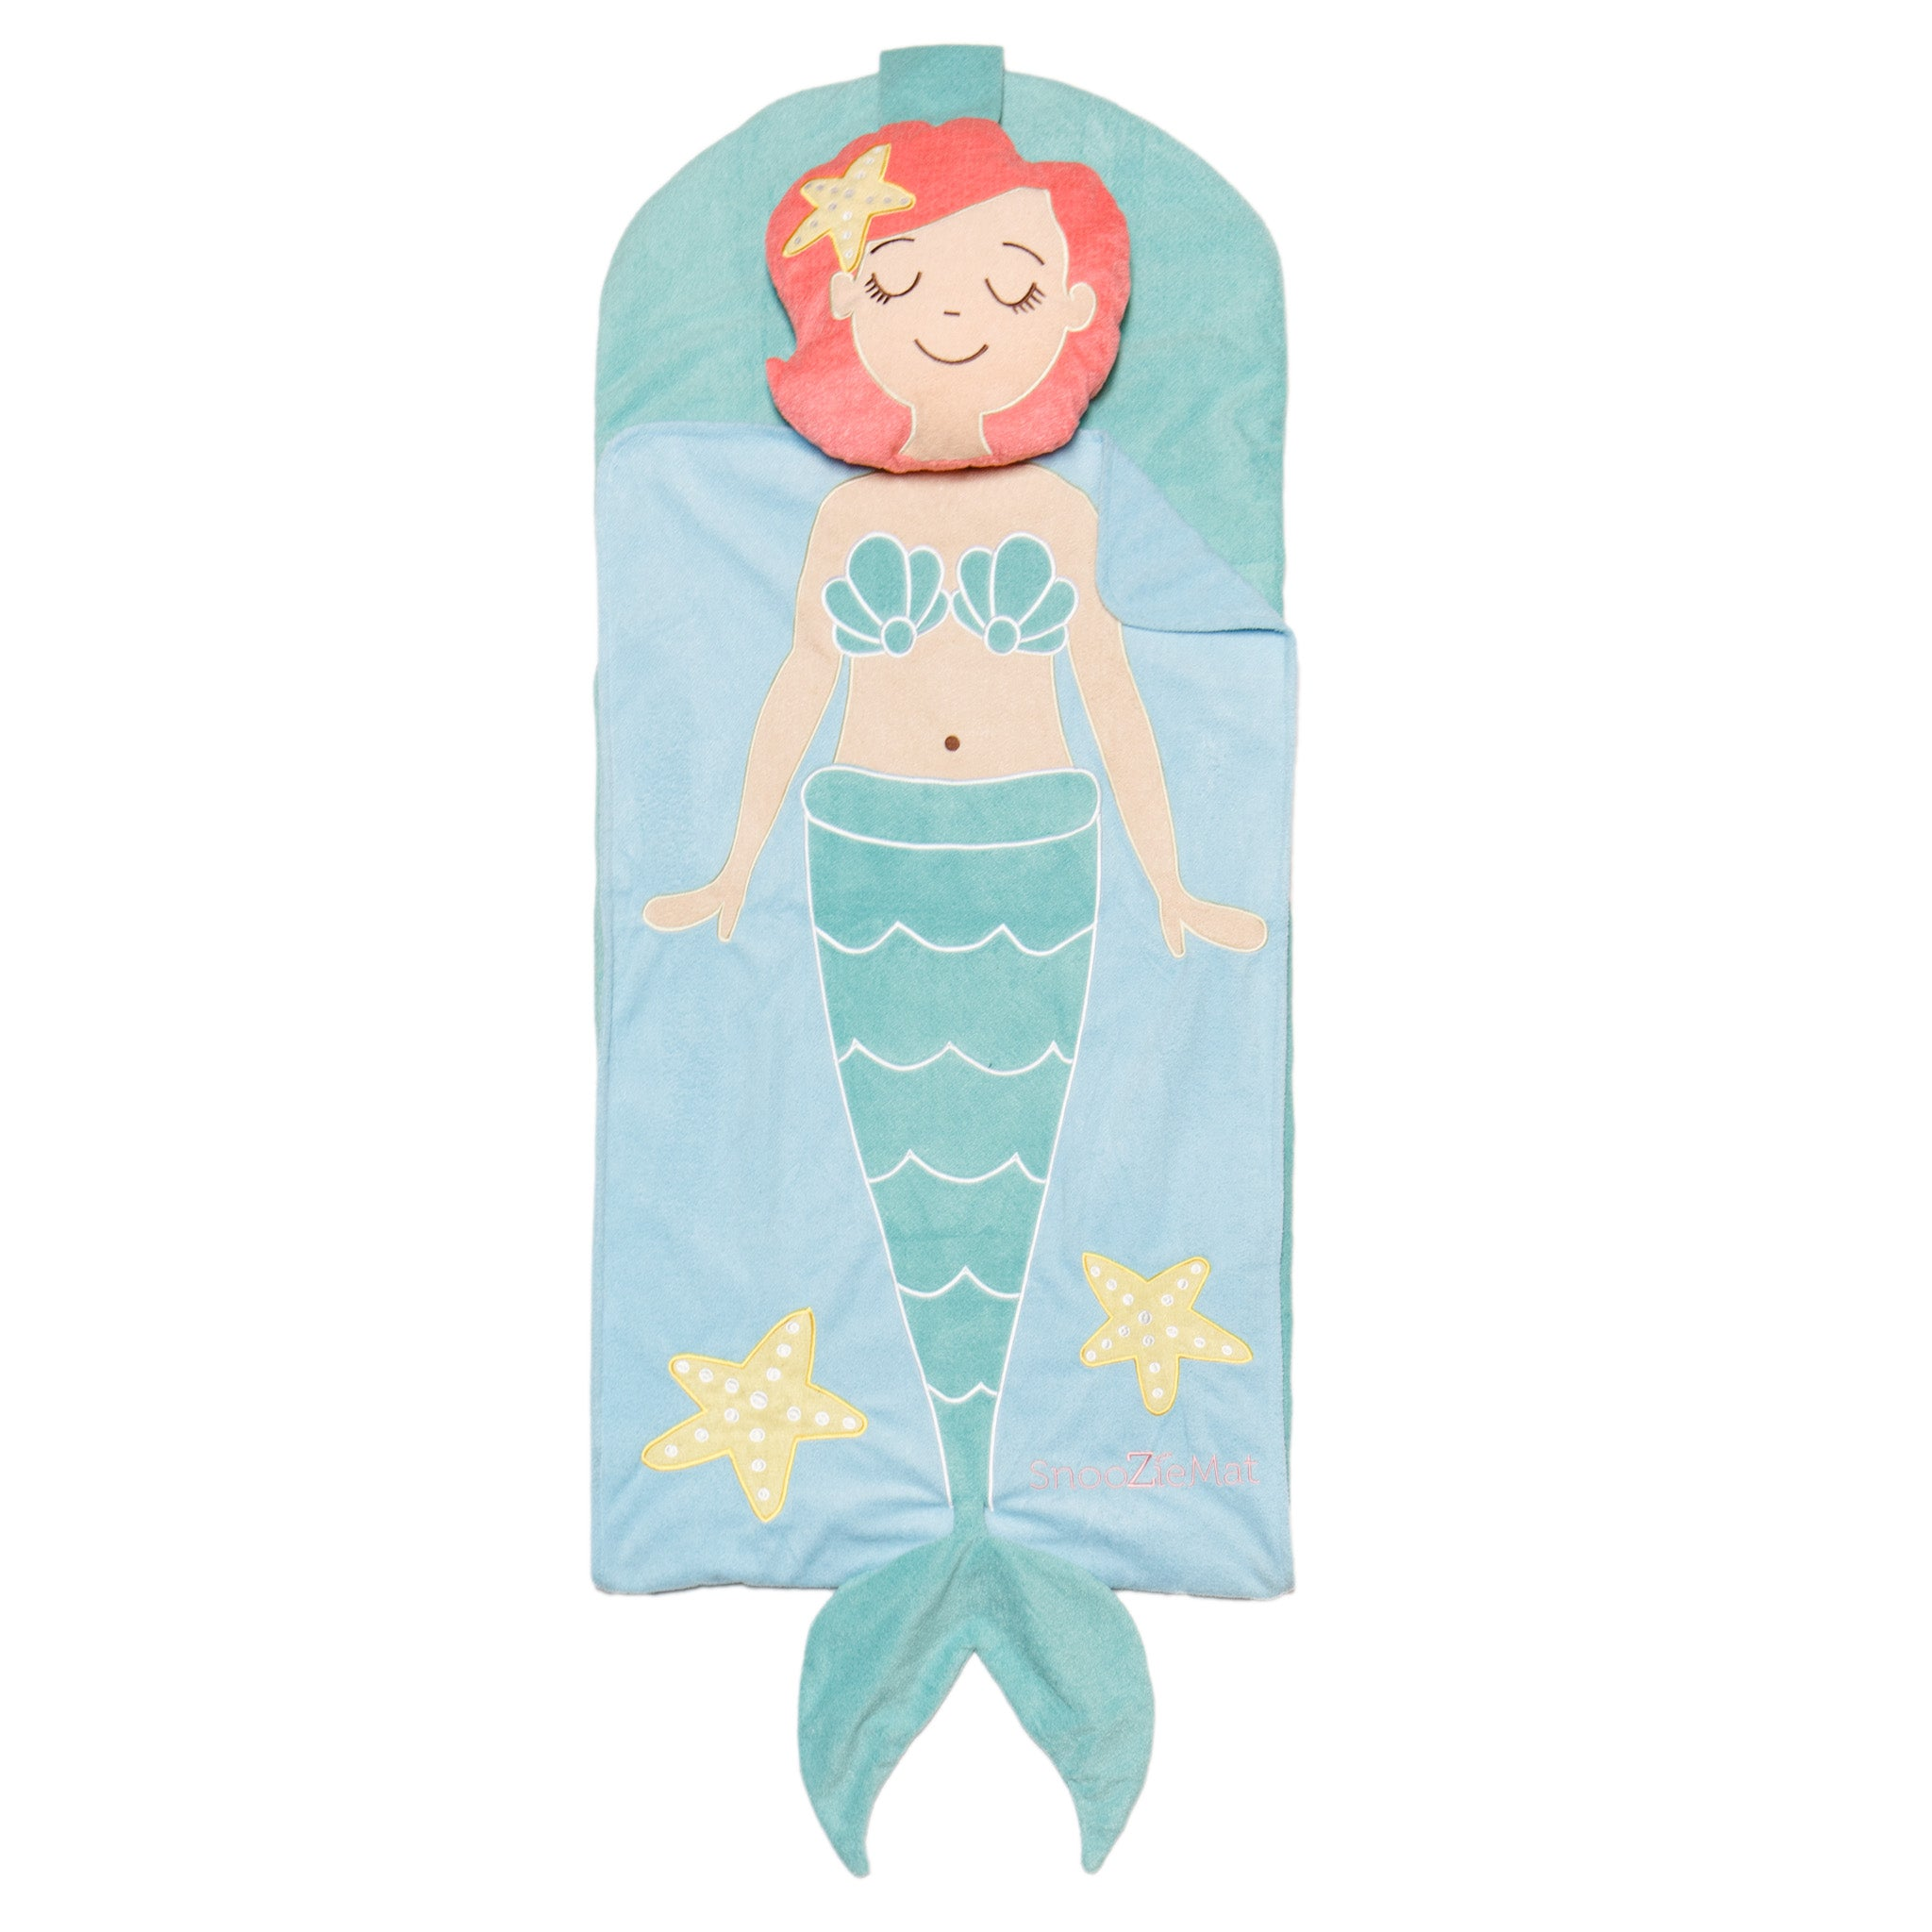 Pearl the Mermaid SnooZieMat Sleeping Bag by Sleeping Baby Take Pearl the Mermaid for your sleepovers!  The SnooZieMat is a clever nap time on-the-go solution. This easy-to-pack sleeping bag is ideal for school naps, sleepovers, and blanket forts. Once your child is done snoozing, roll it up and keep moving.     48 x24  mat rolls into a 12 x16  backpack (Bottom mat is roughly 1.5 inches thick)      Fabric: 100% poly      Machine washable    The SnooZieMat is machine washable, for best results remove the pillow insert before washing.   - Pearl the Mermaid SnooZieMat Sleeping Bag by Sleeping Baby